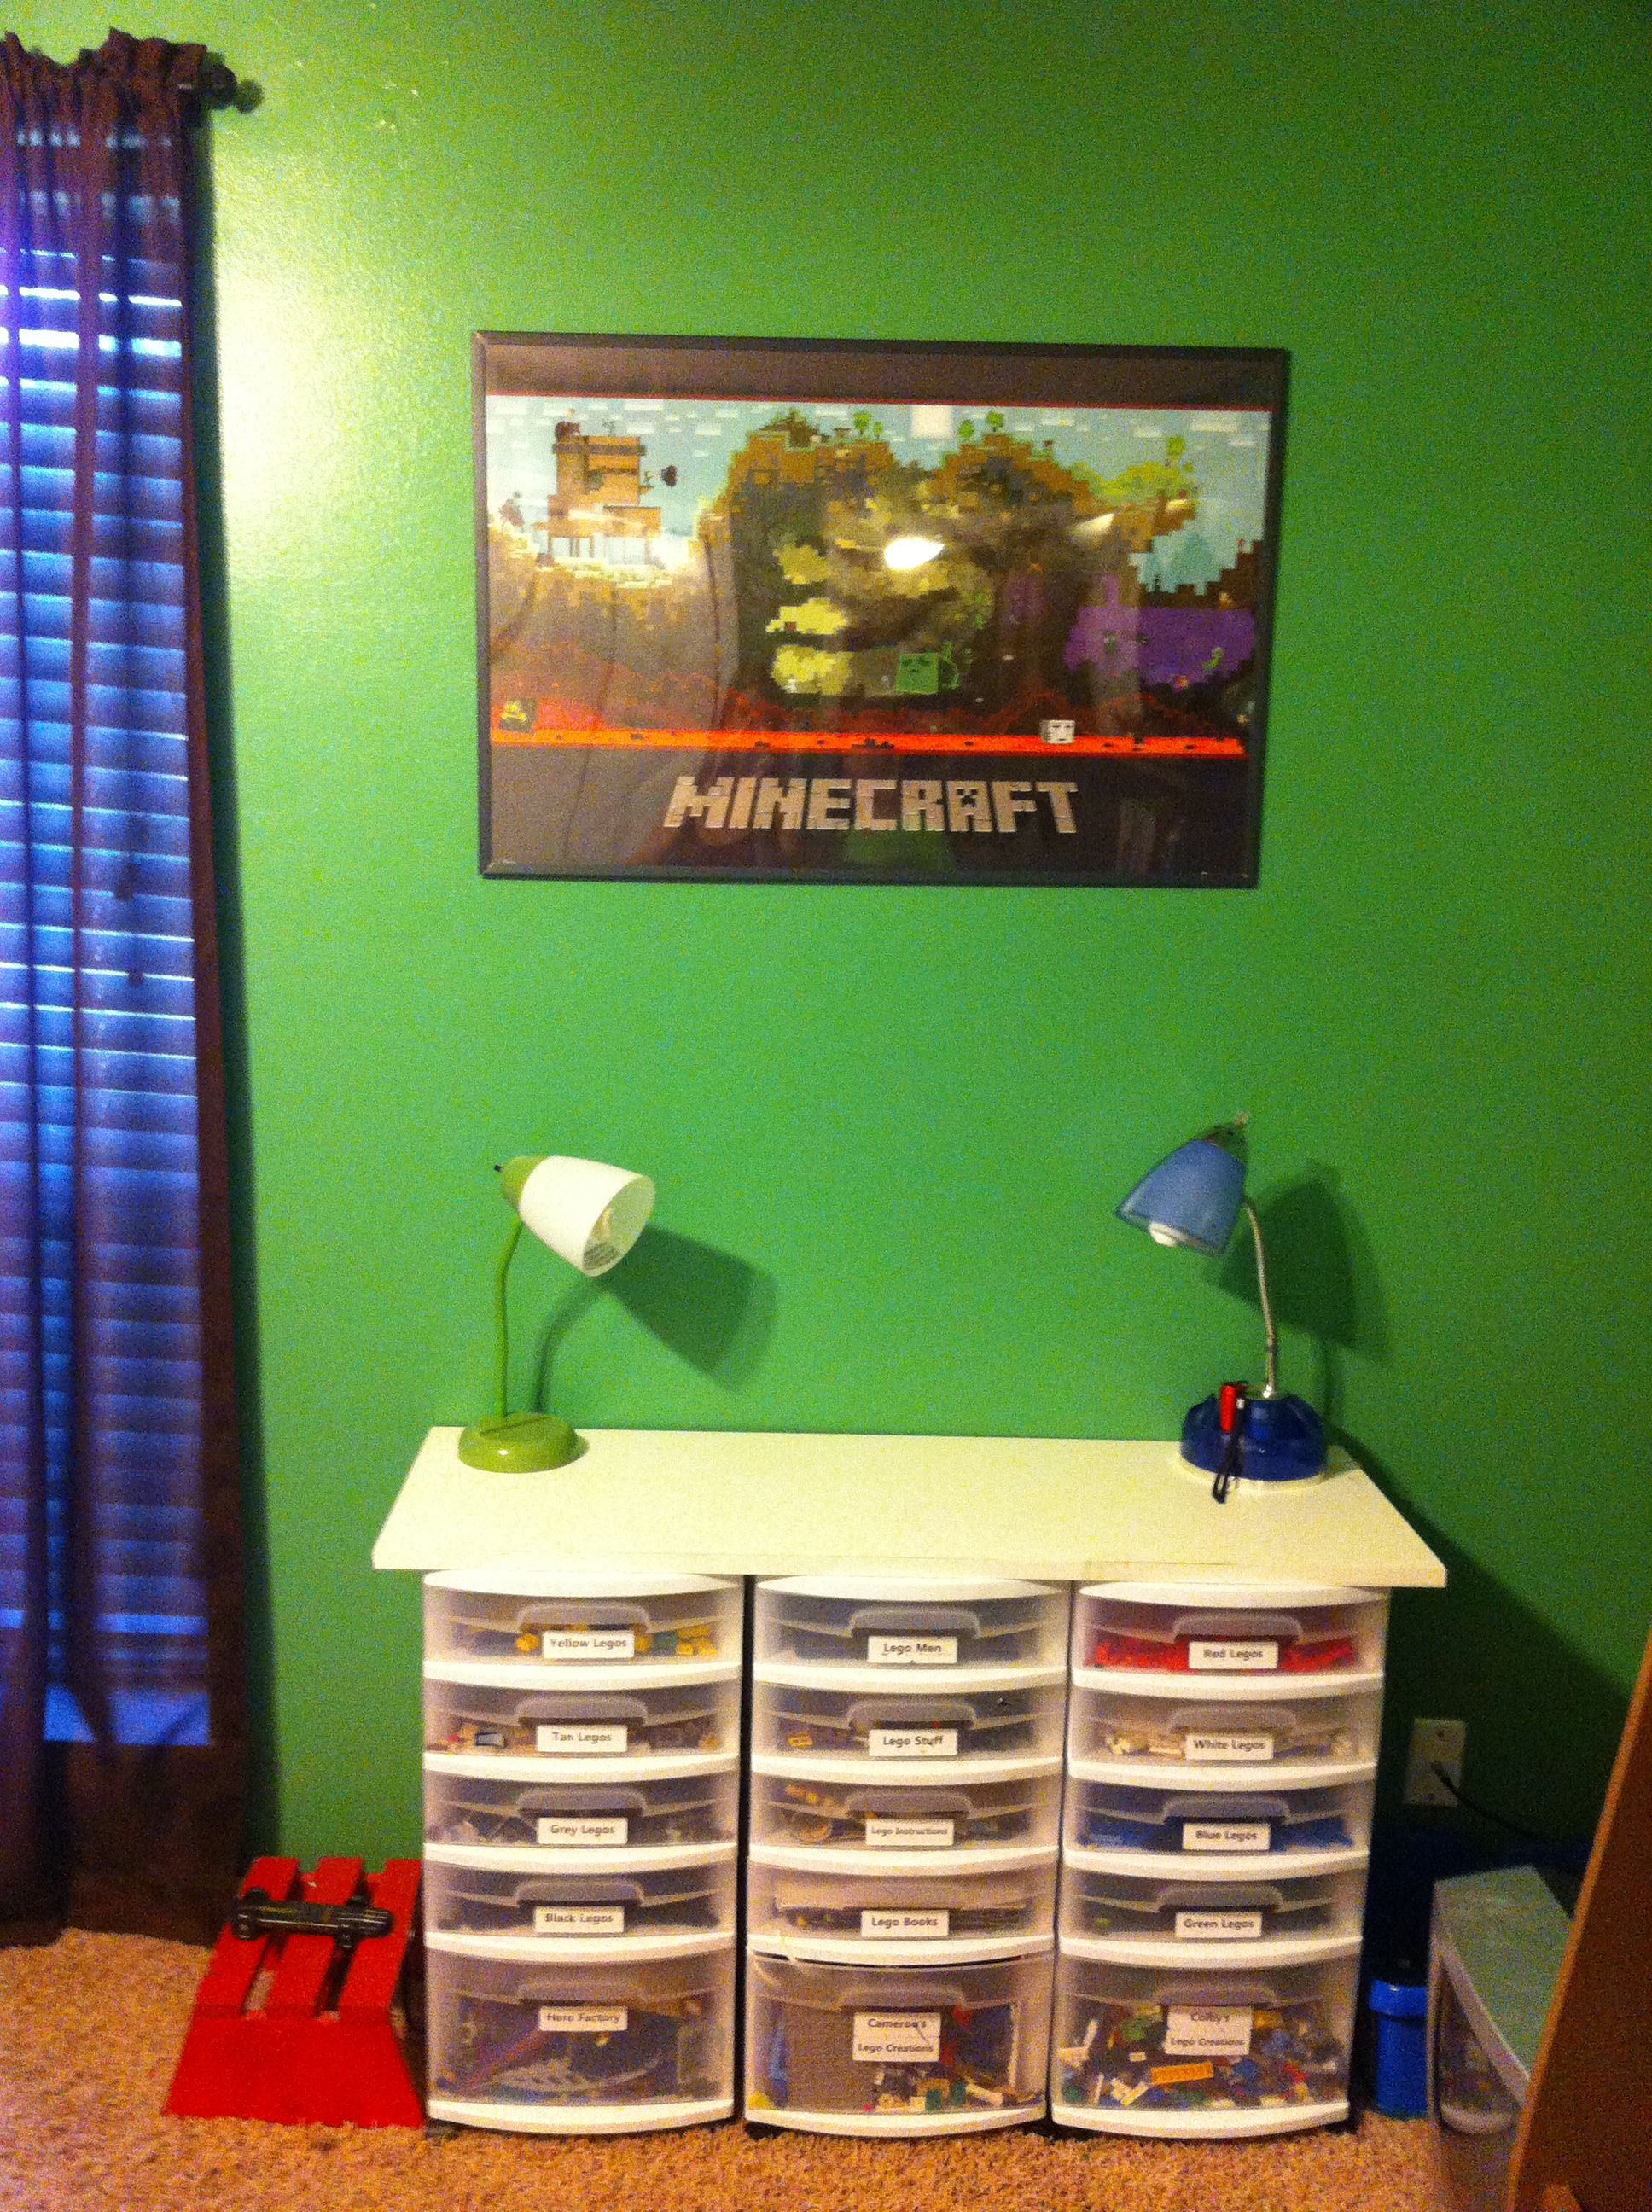 Room 2 Build Bedroom Kids Lego: Minecraft Room Pic 4 With Lego Creation Station